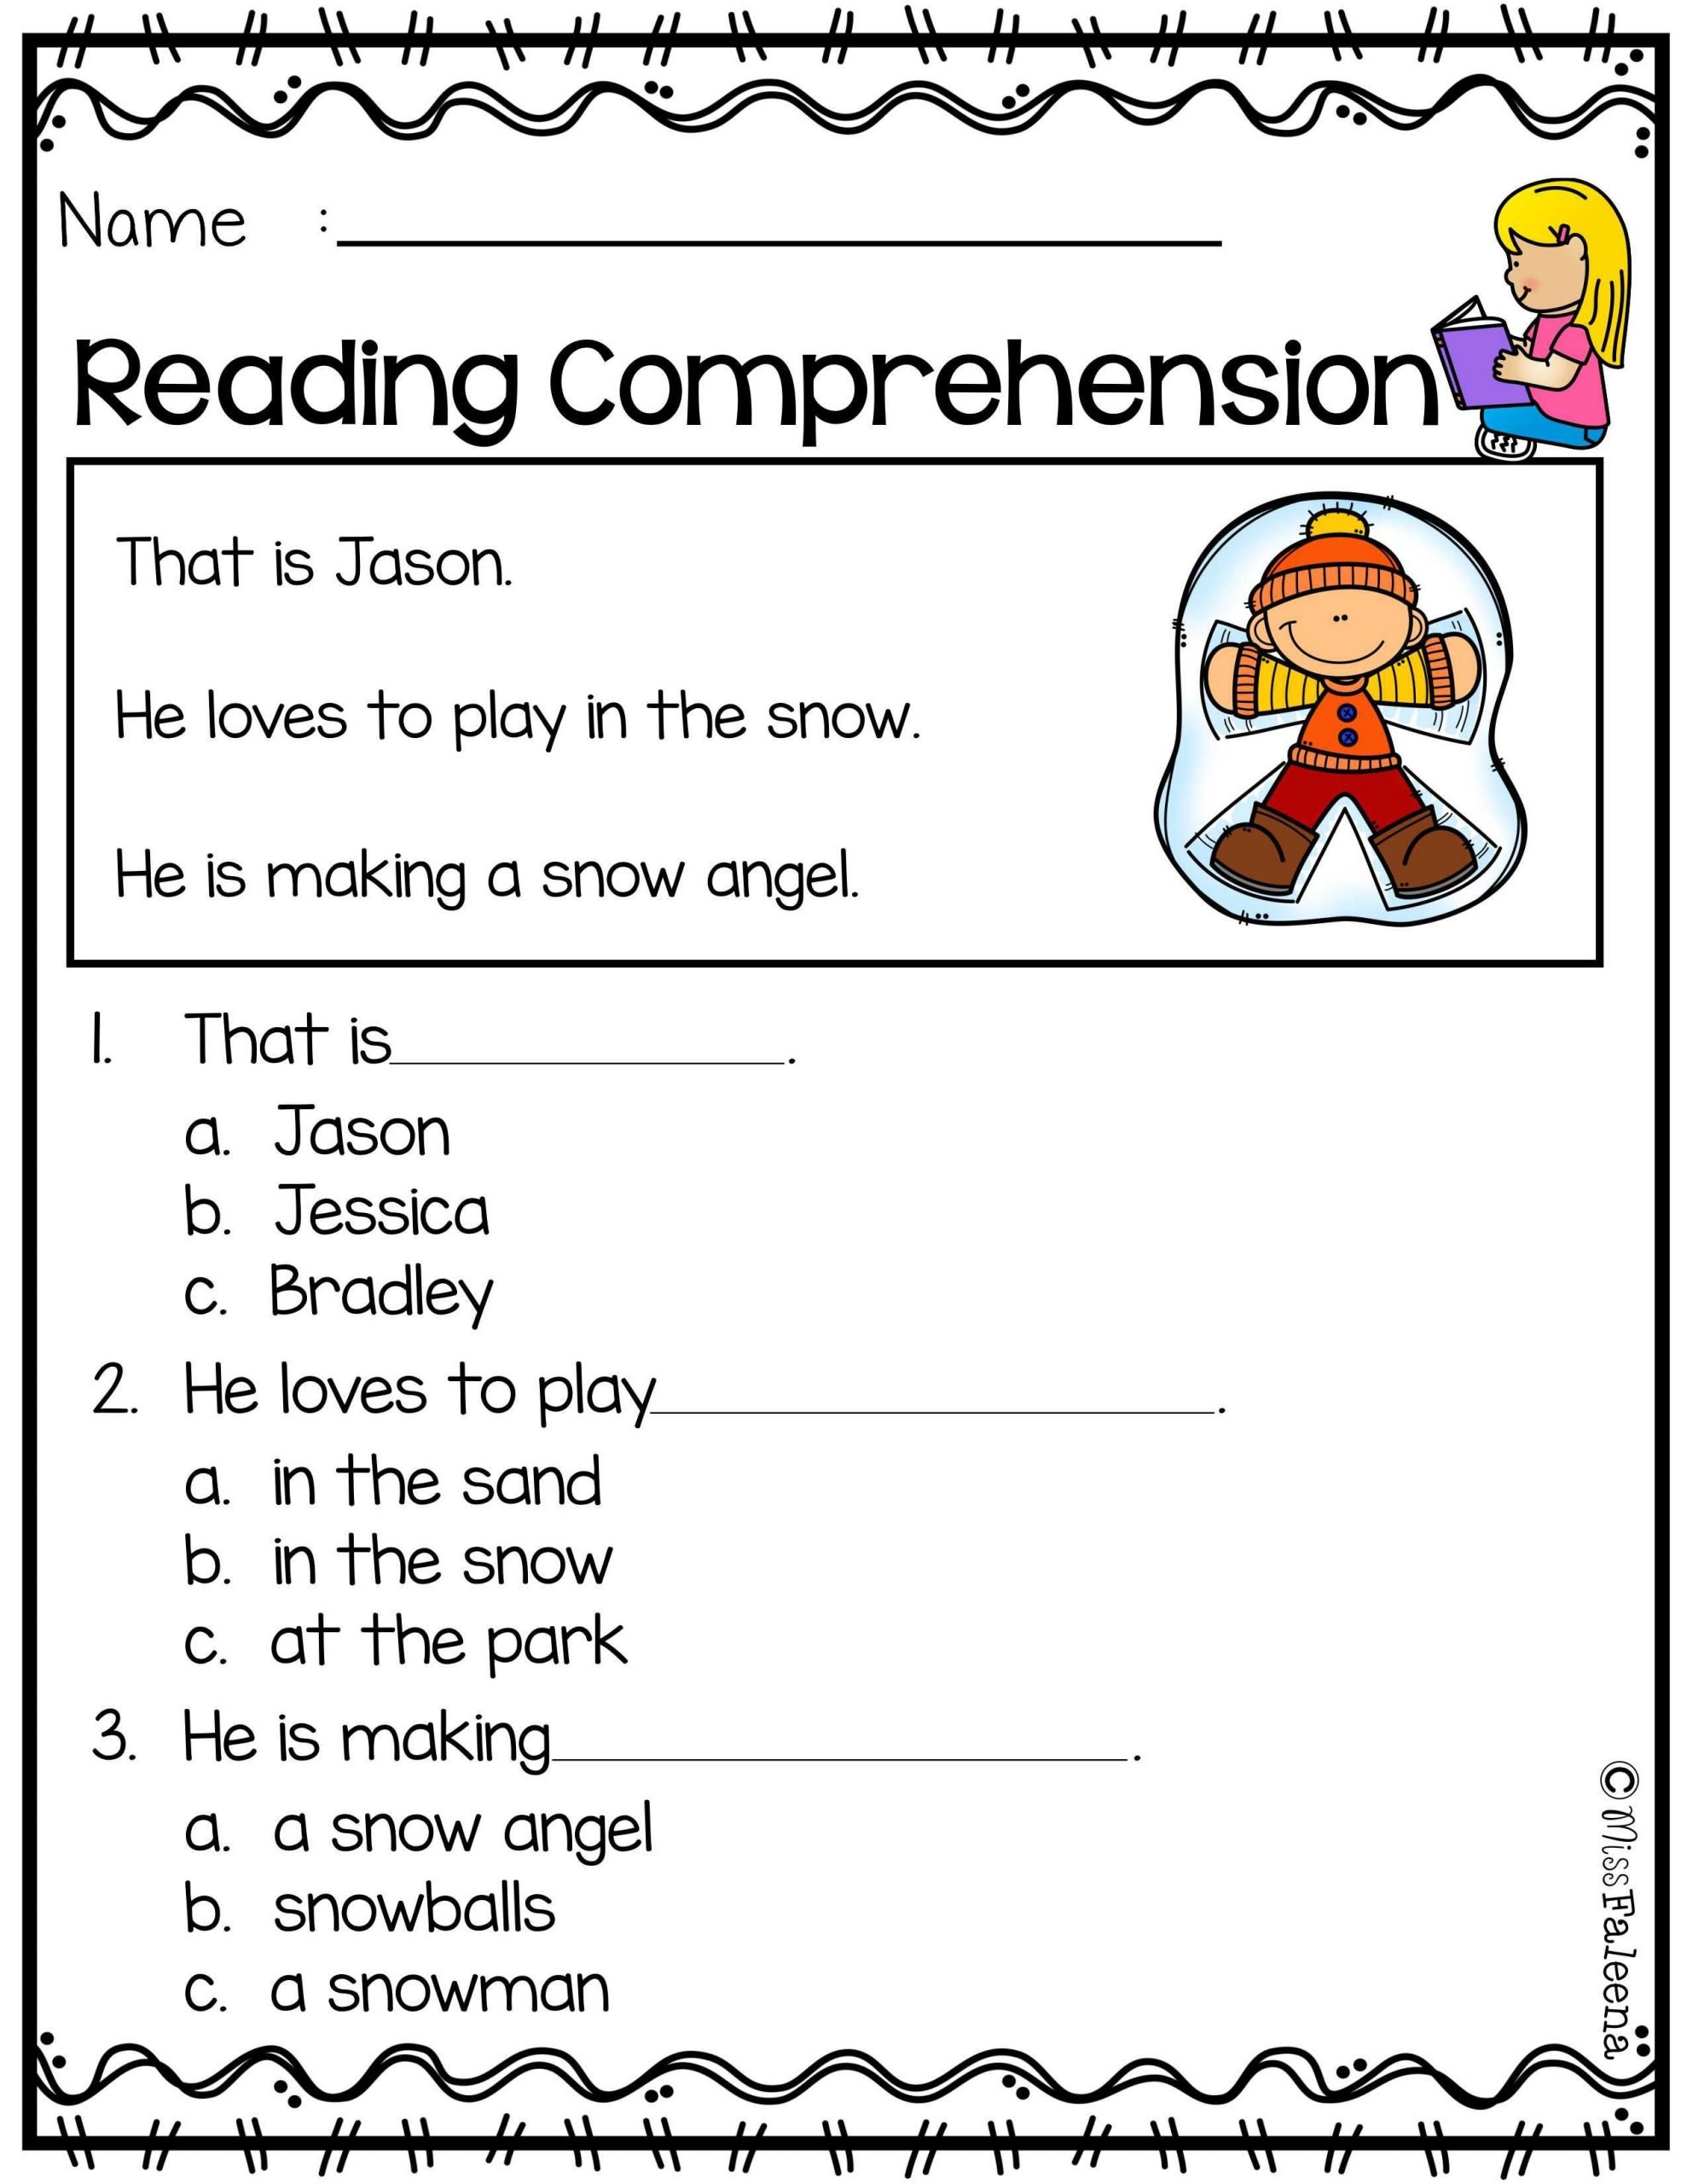 Comprehension Worksheets for Kindergarten Free Reading Prehension